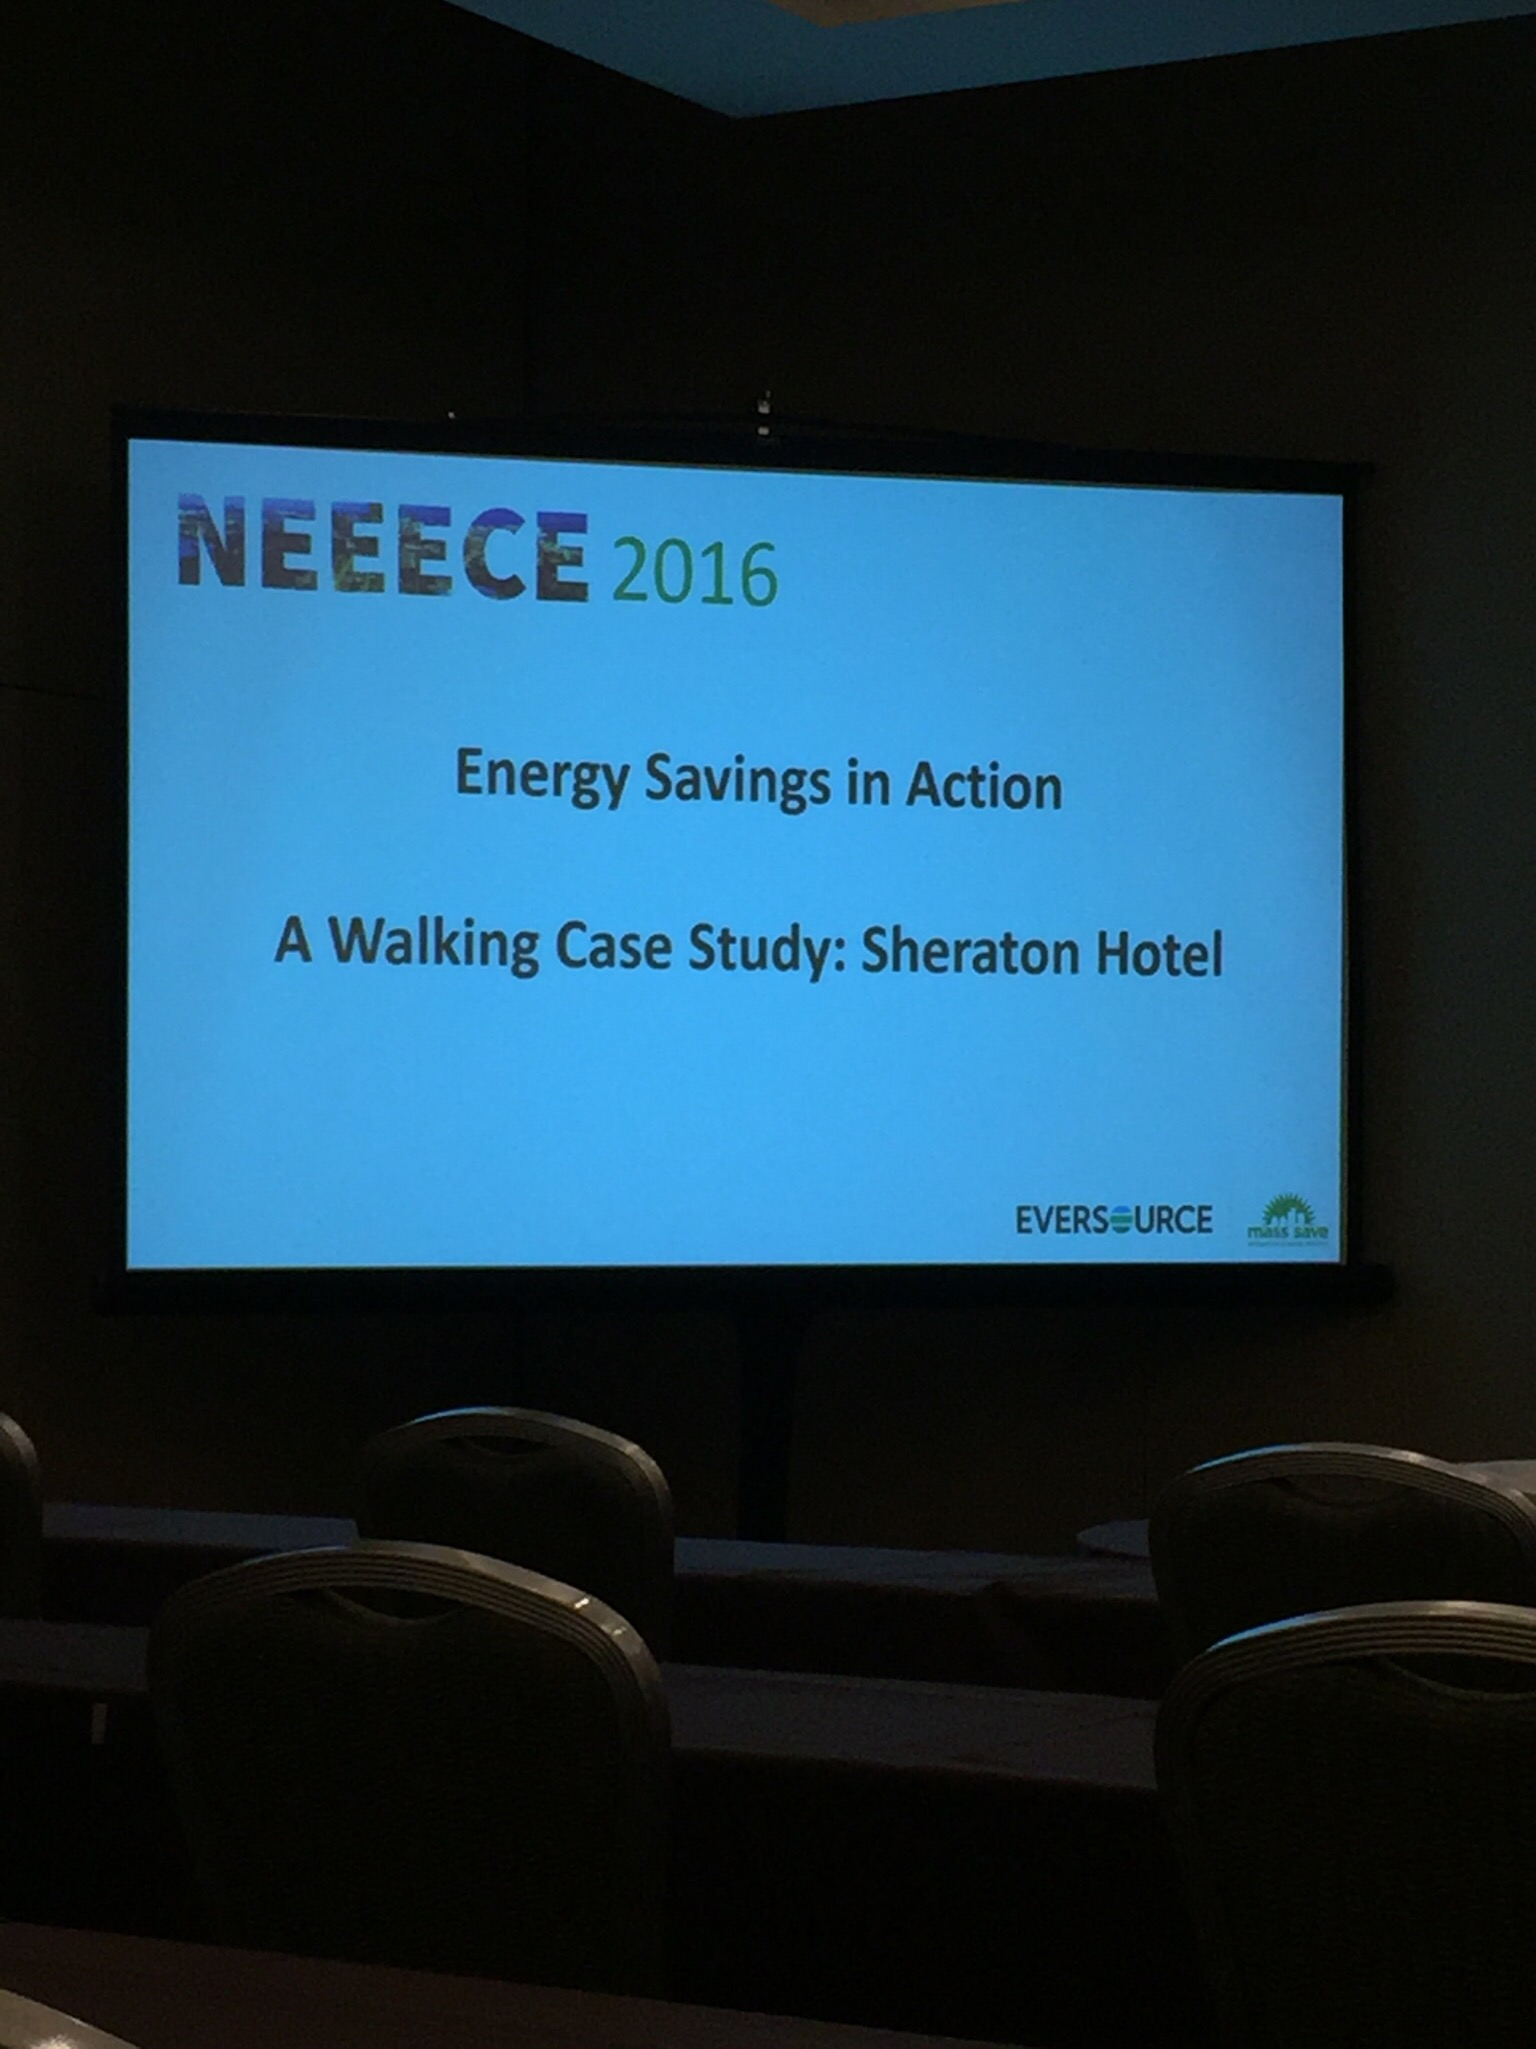 Caroline and Samantha took advantage of a unique opportunity at this year's event - a walking case study! The informative session showed tour attendees various energy efficiency upgrades implemented in the Sheraton Hotel Boston by seeing each project in person.